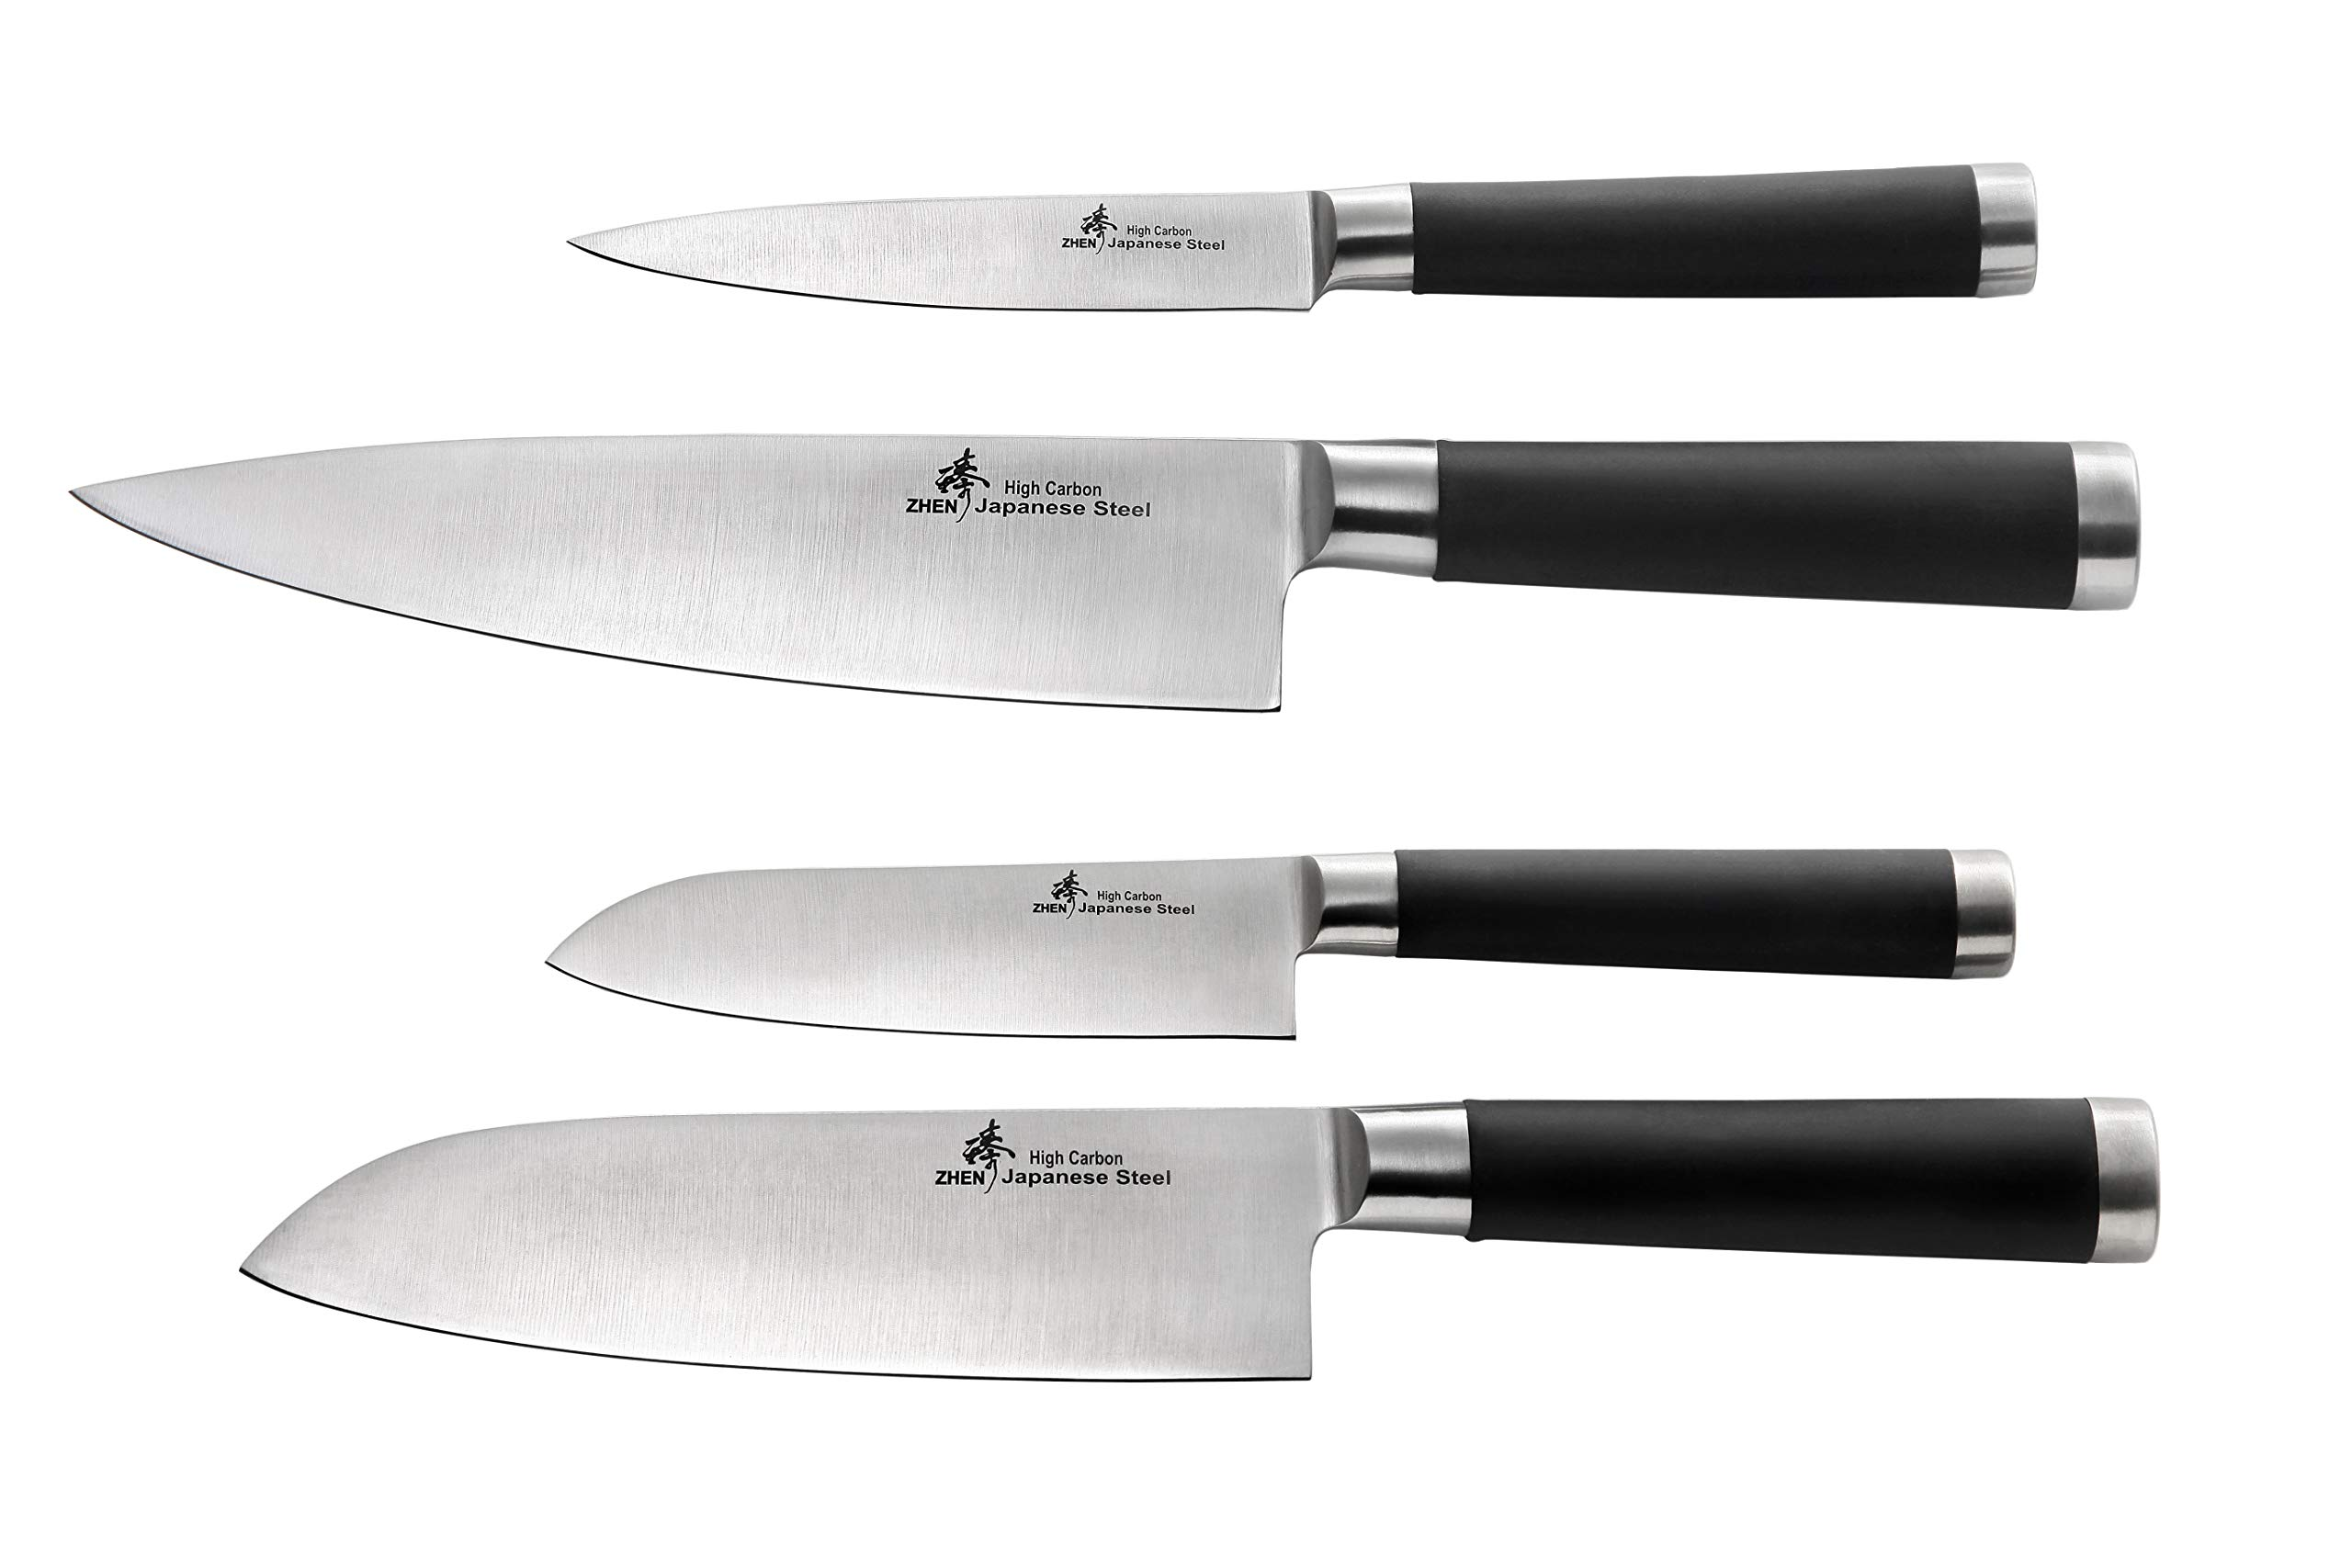 ZHEN F6F7 Japanese 440C High Carbon 4-Piece Knife Set 8-inch/7-inch Silver